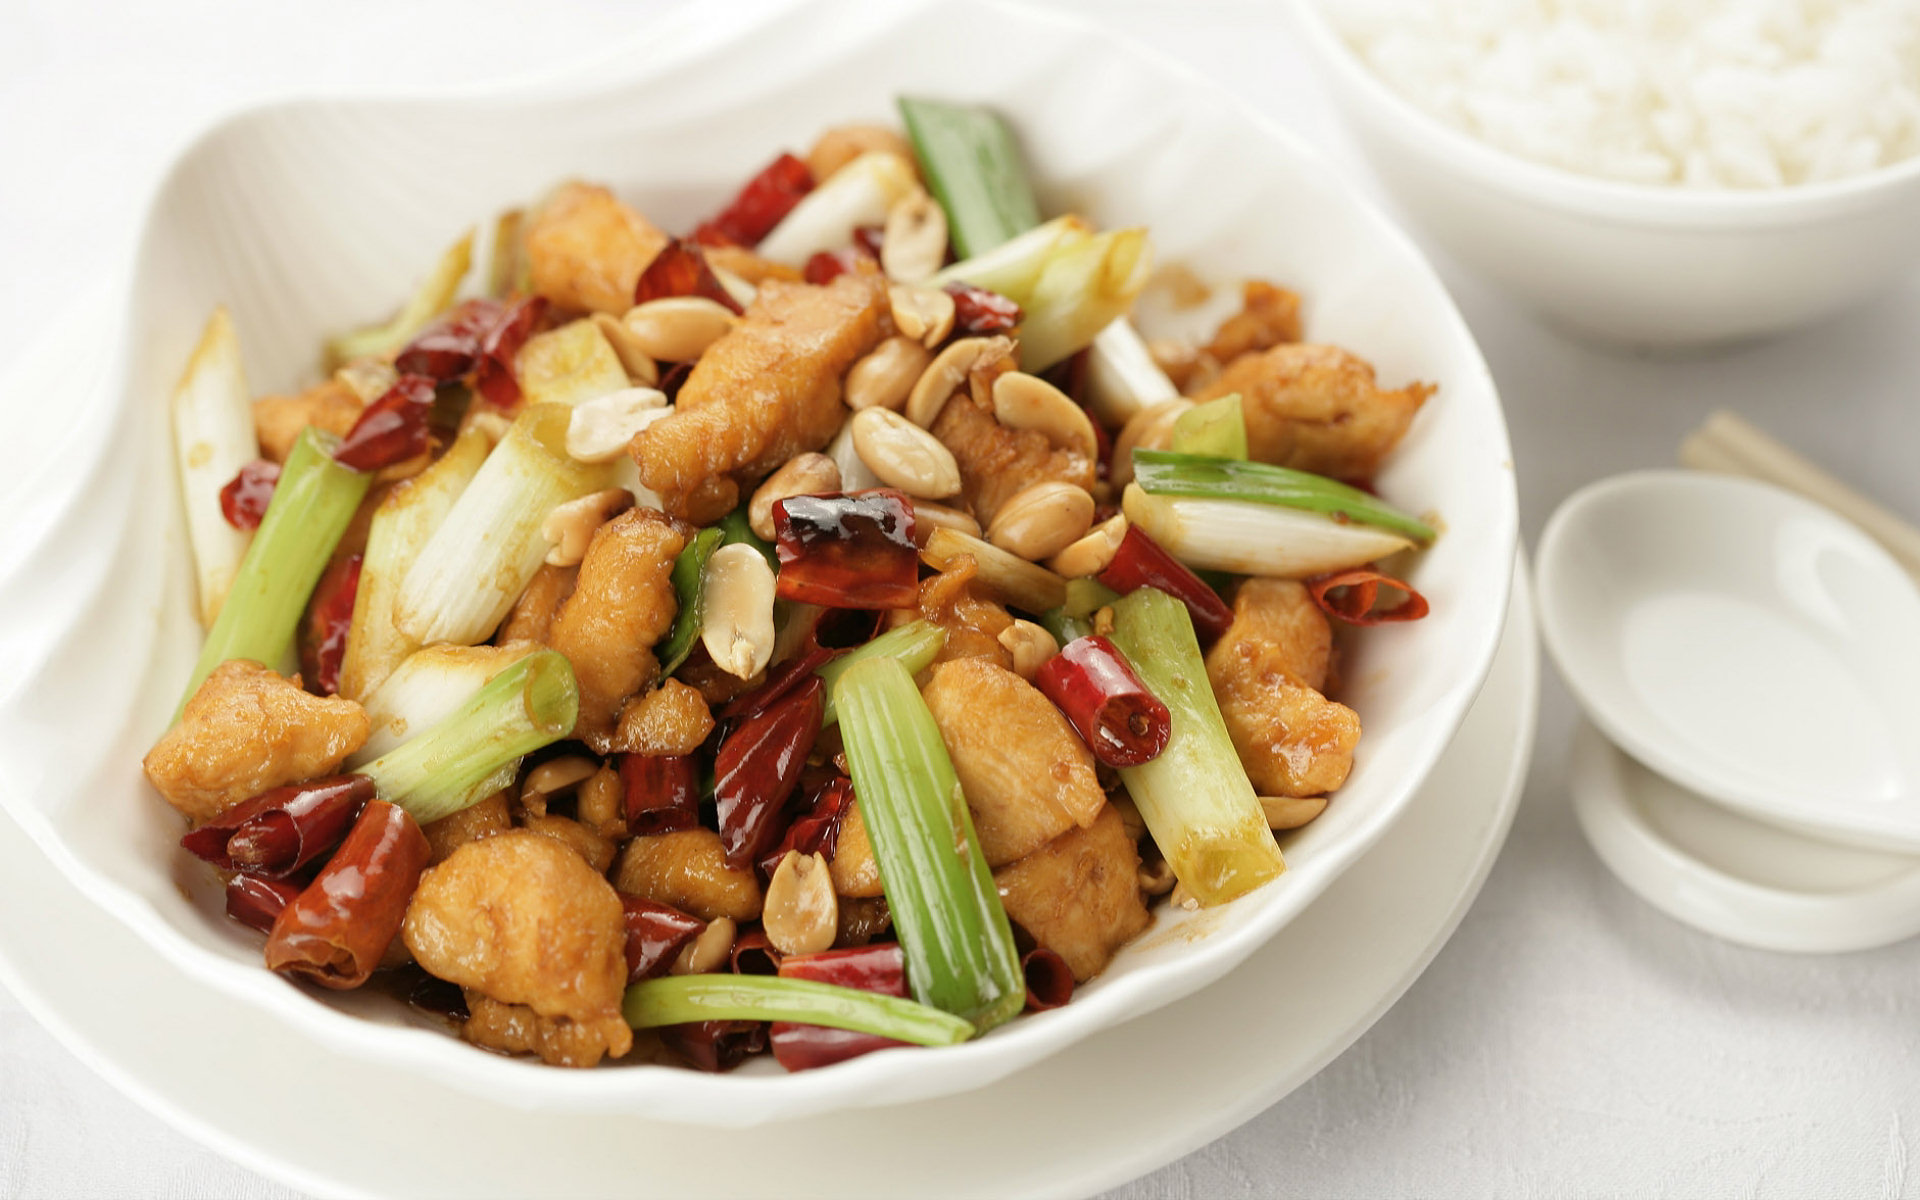 chinese food wallpapers: Chinese Food Full HD Wallpaper And Background Image